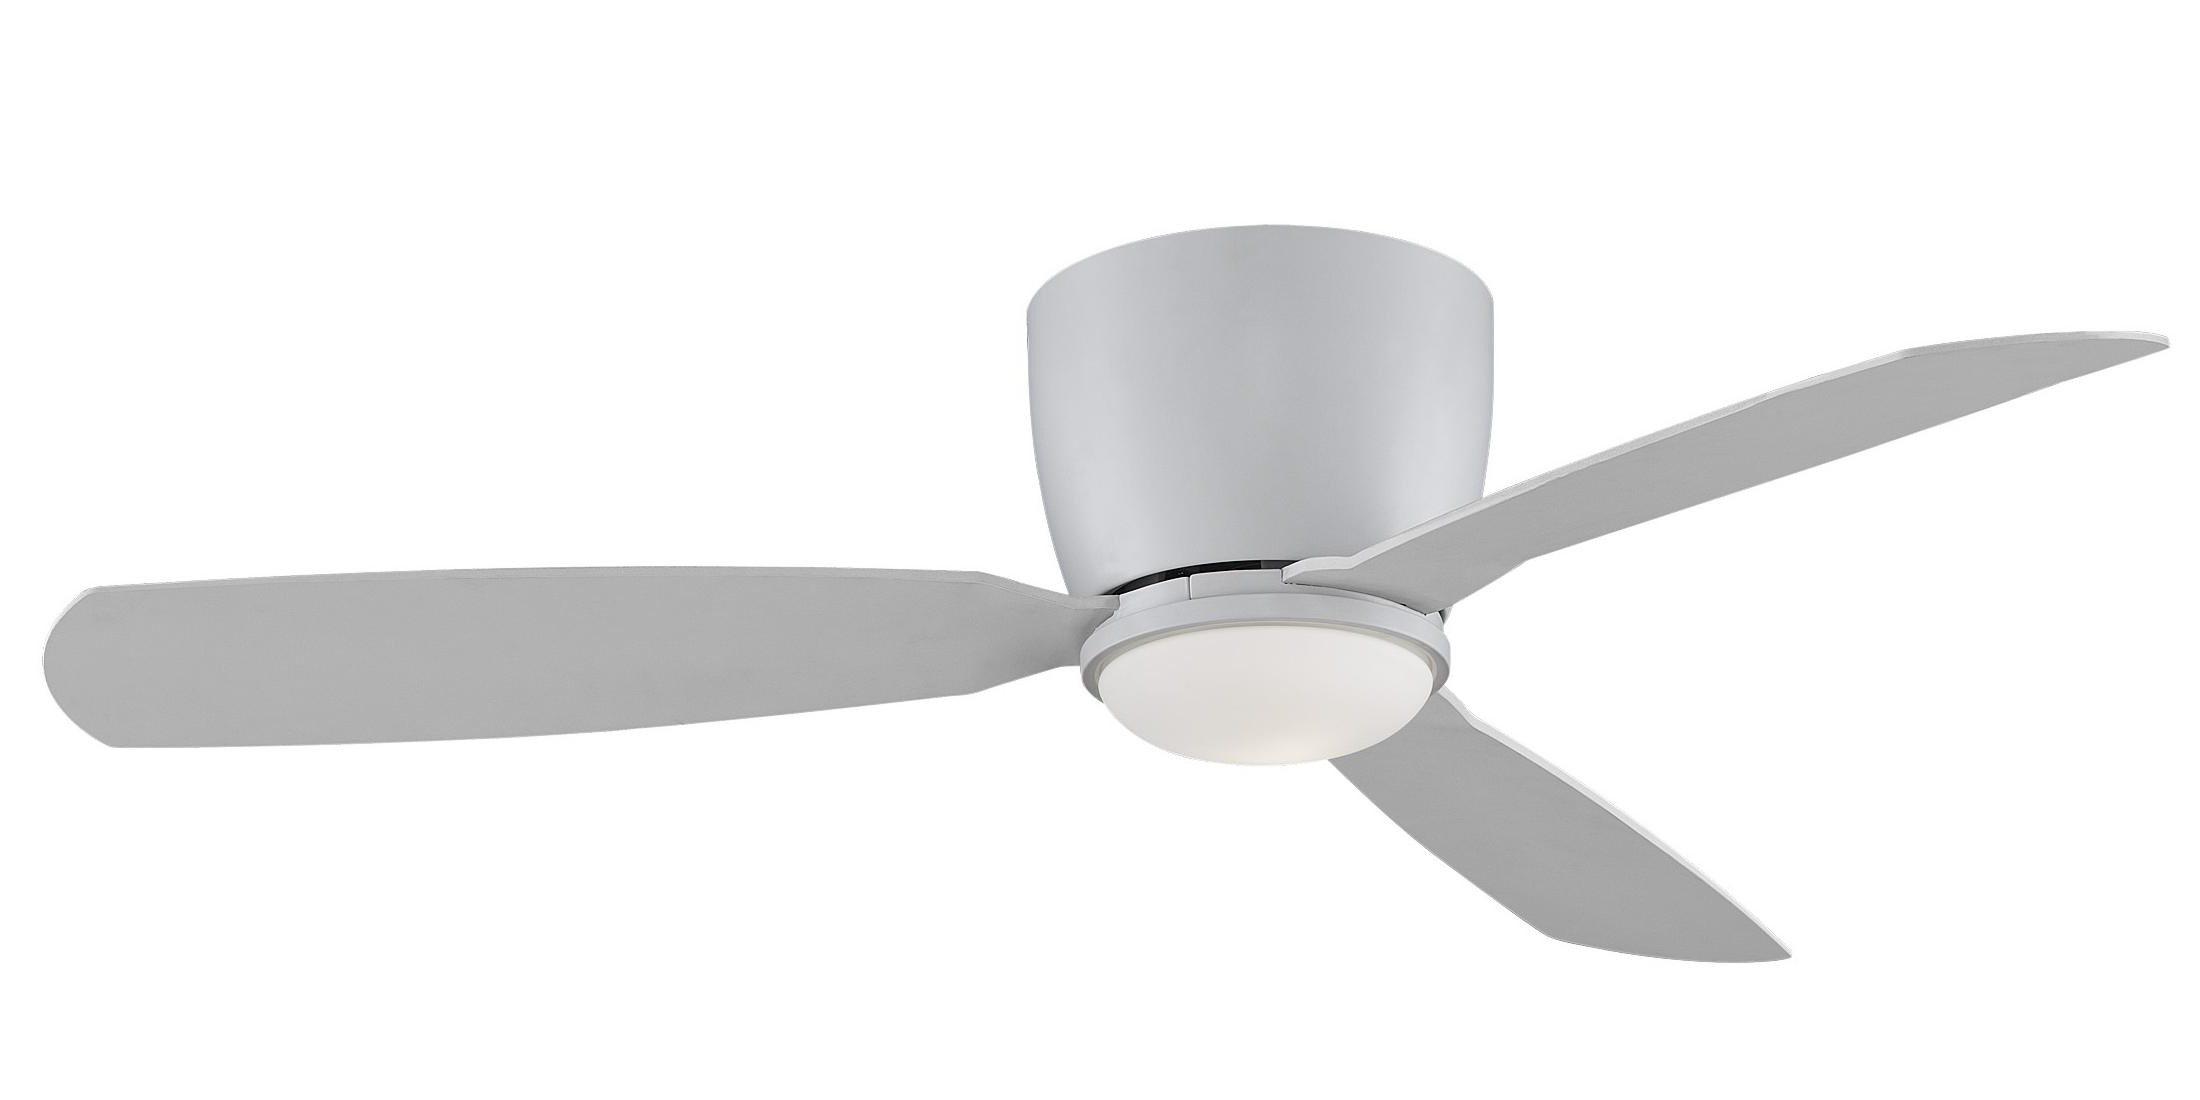 Famous Fanimation Embrace 52 Ceiling Fan Model Fps7955Mw In Matte White Intended For Embrace 3 Blade Ceiling Fans (View 10 of 20)